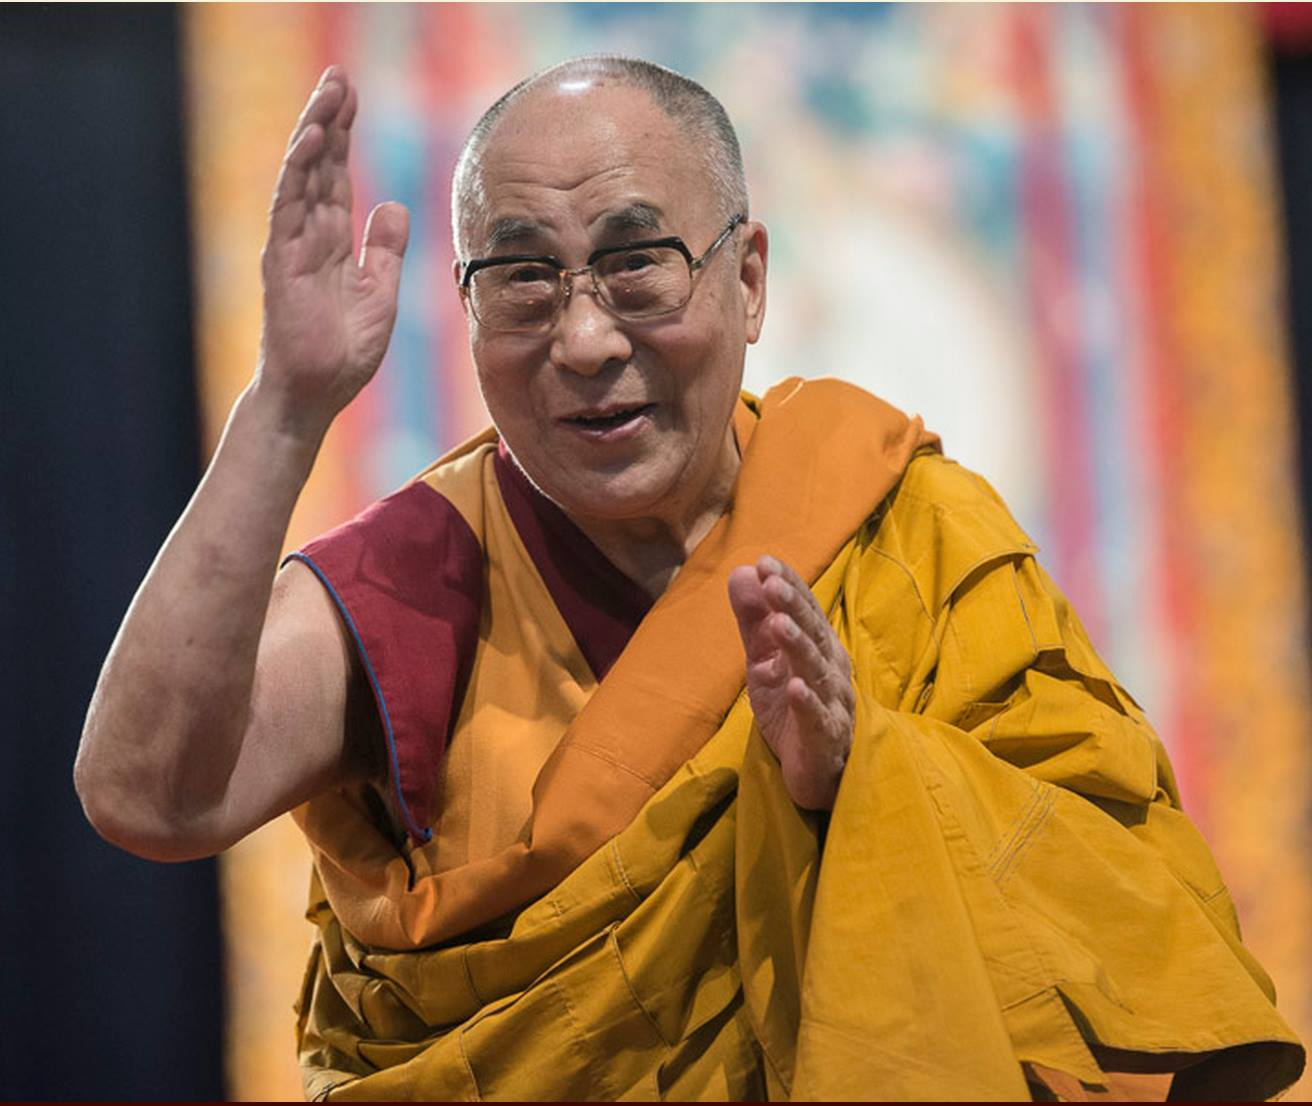 His Holiness the Dalai Lama: The only way in which we can do this is by means of reasoning and analysis.